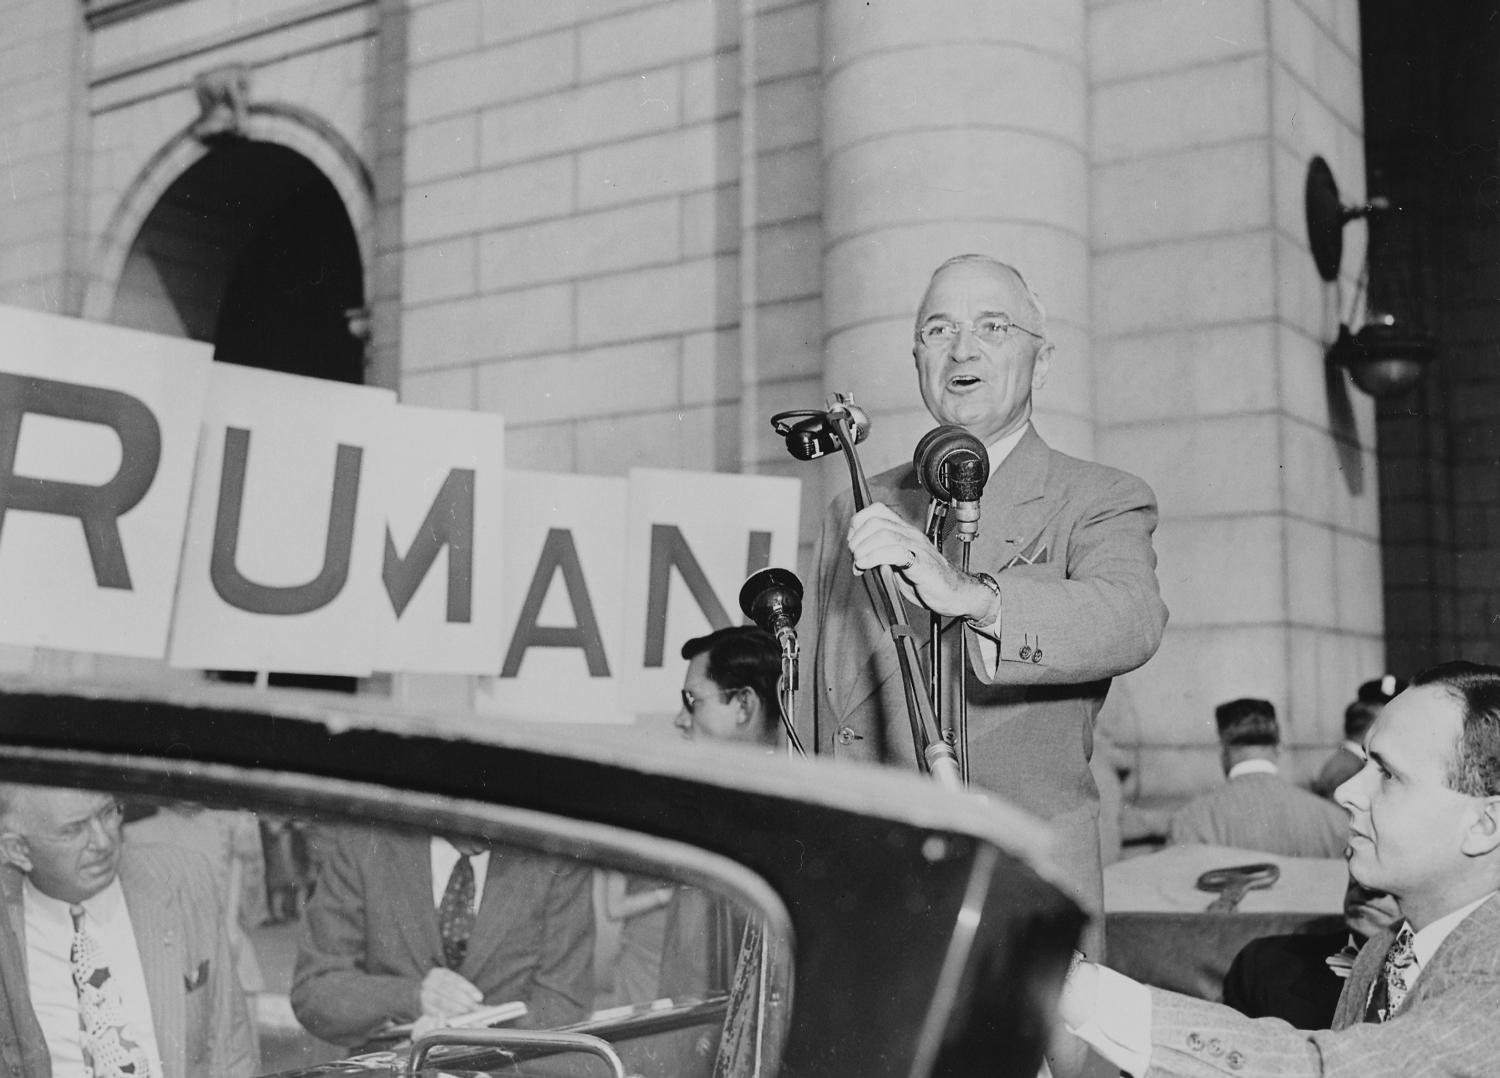 truman years Harry s truman summary: harry s truman was the 33rd president of the united states of america he was born in 1884 in missouri raised on a farm, truman did not attend college after working a variety of jobs, he returned to the family farm and joined the national guard although past draft age .